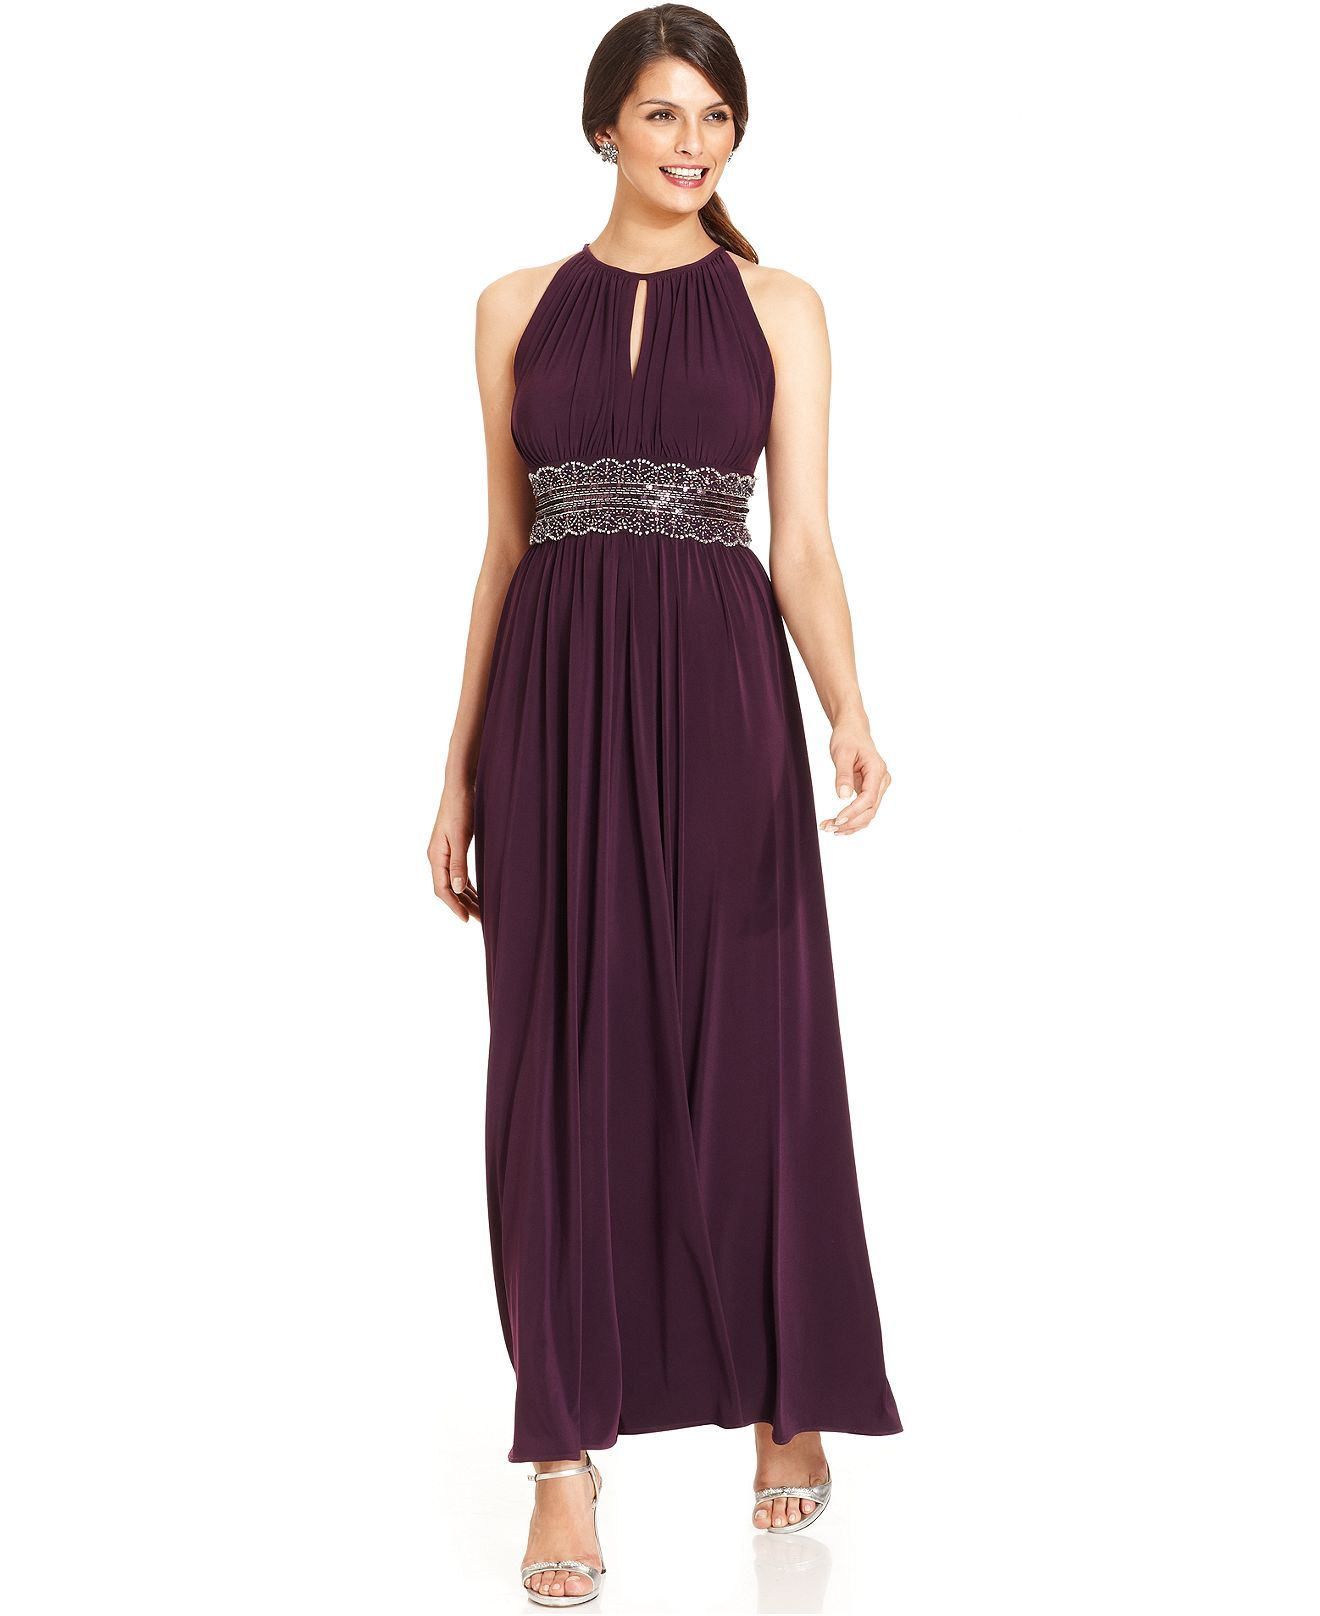 R&M Richards Beaded Gown | Gowns, Bride dresses and Dress online